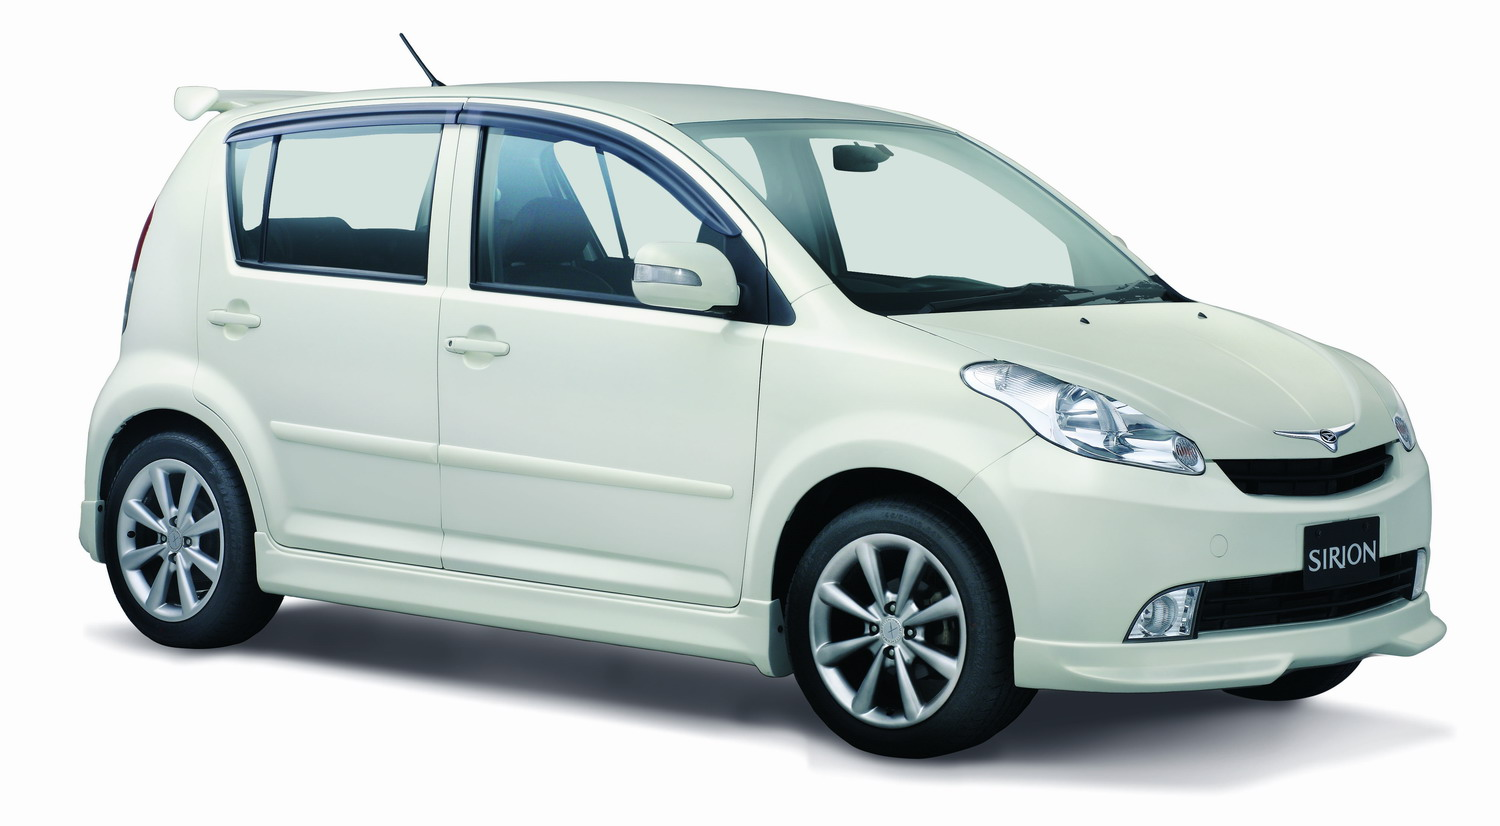 daihatsu sirion review and photos. Black Bedroom Furniture Sets. Home Design Ideas